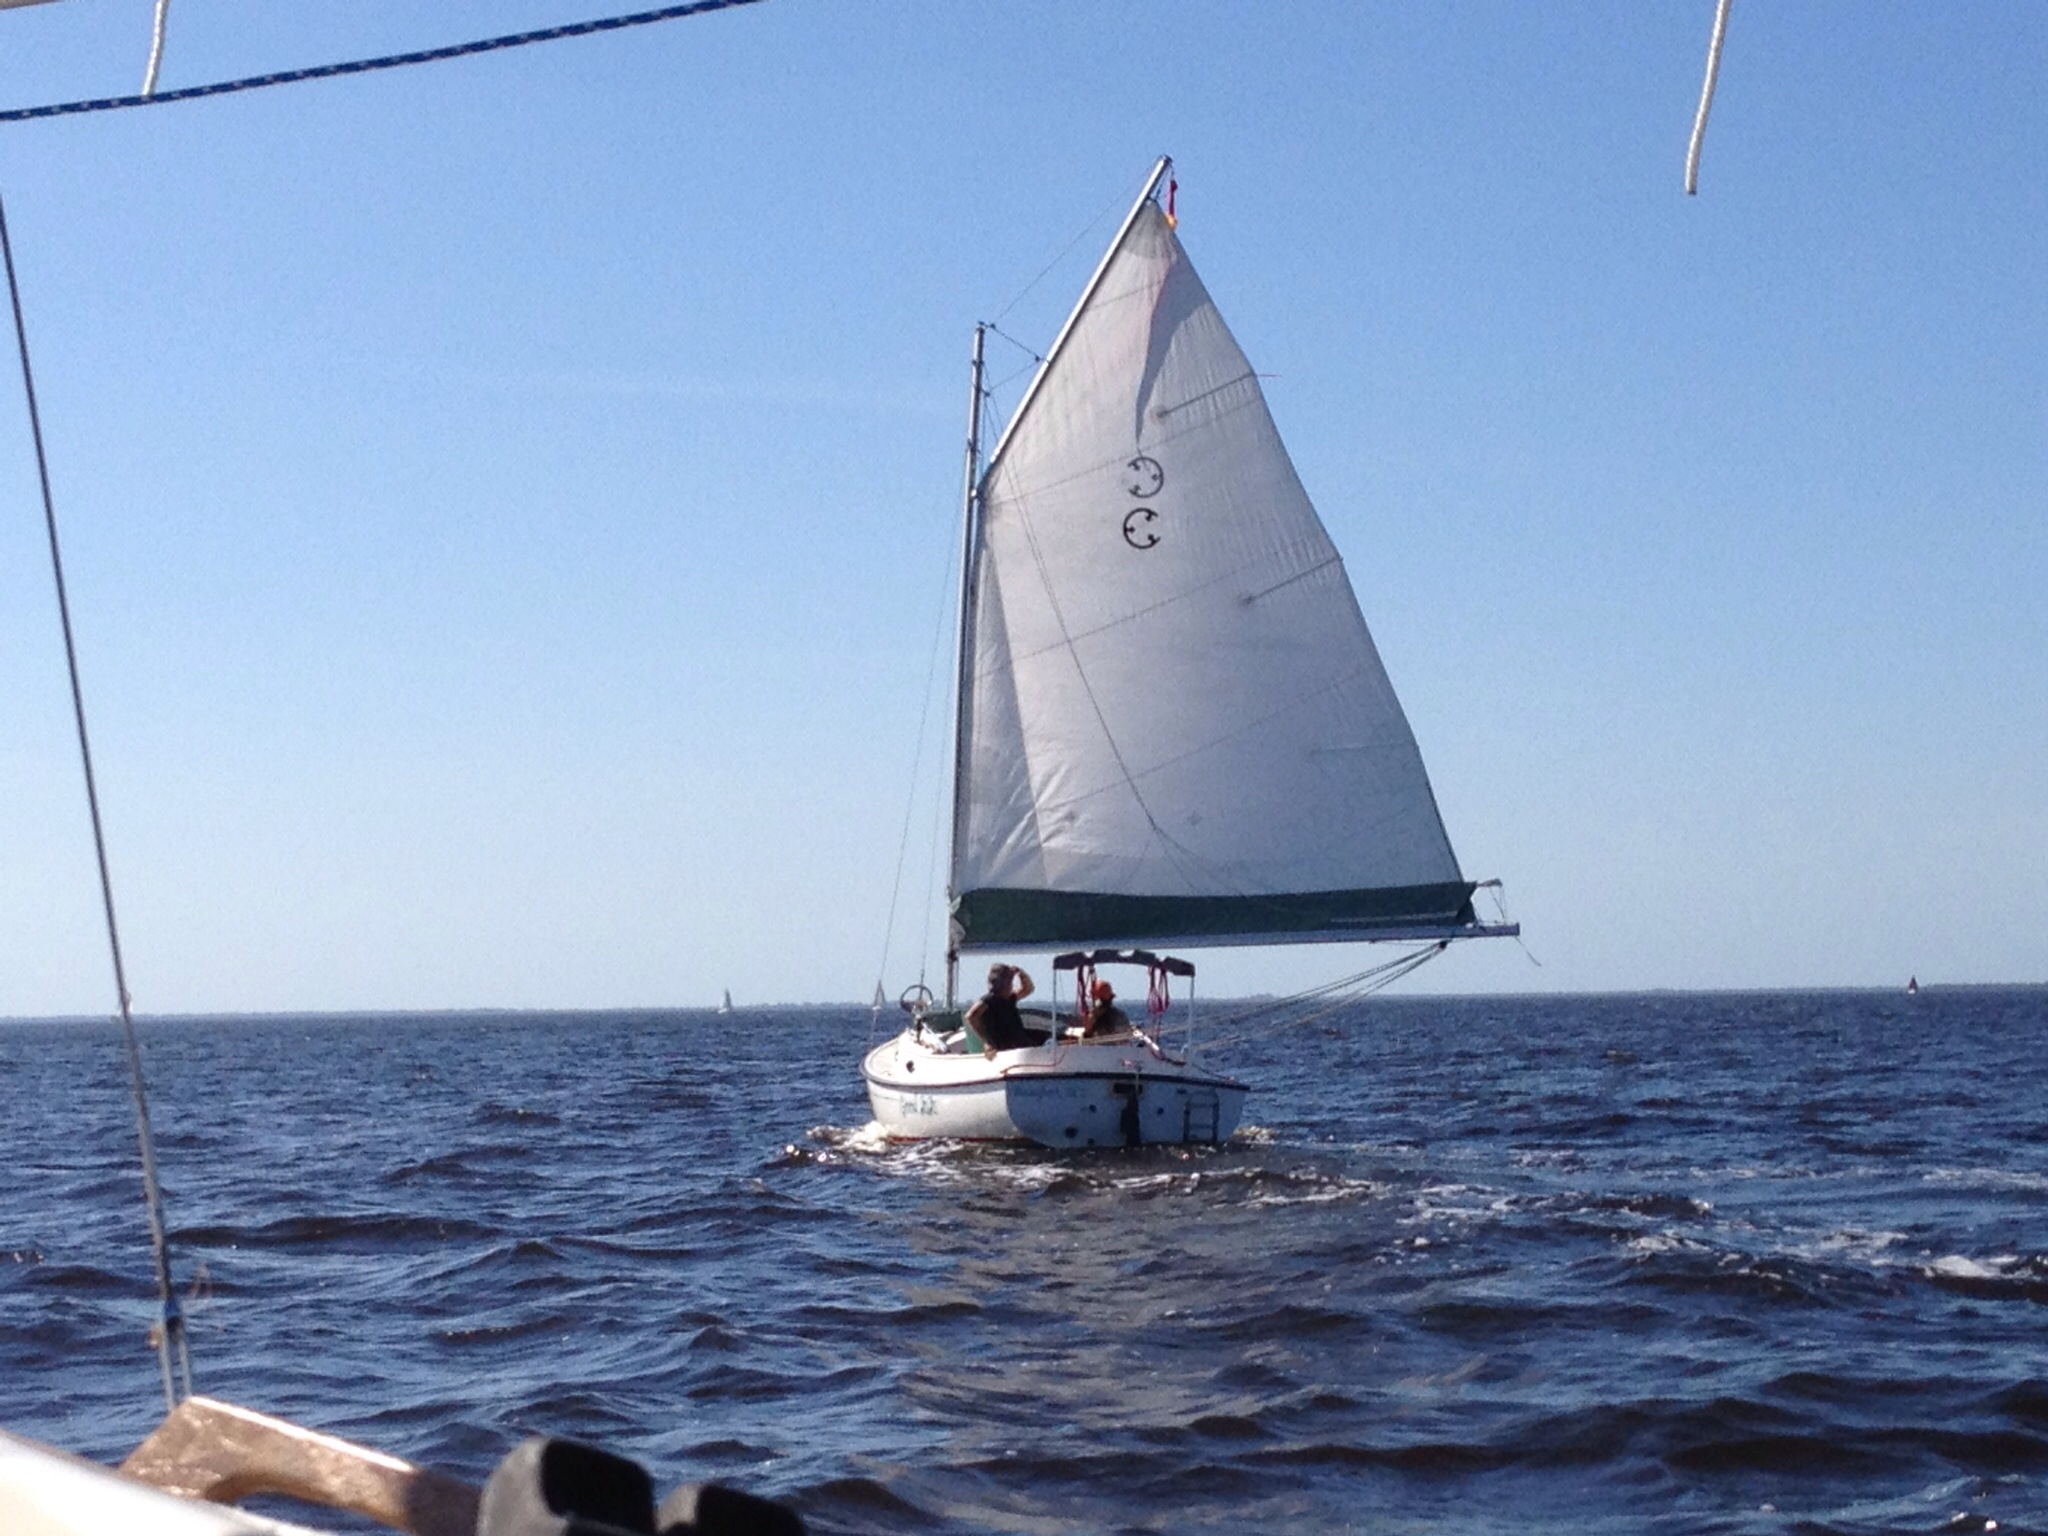 Are all cat boats heavy on the helm? - Cruising Anarchy - Sailing